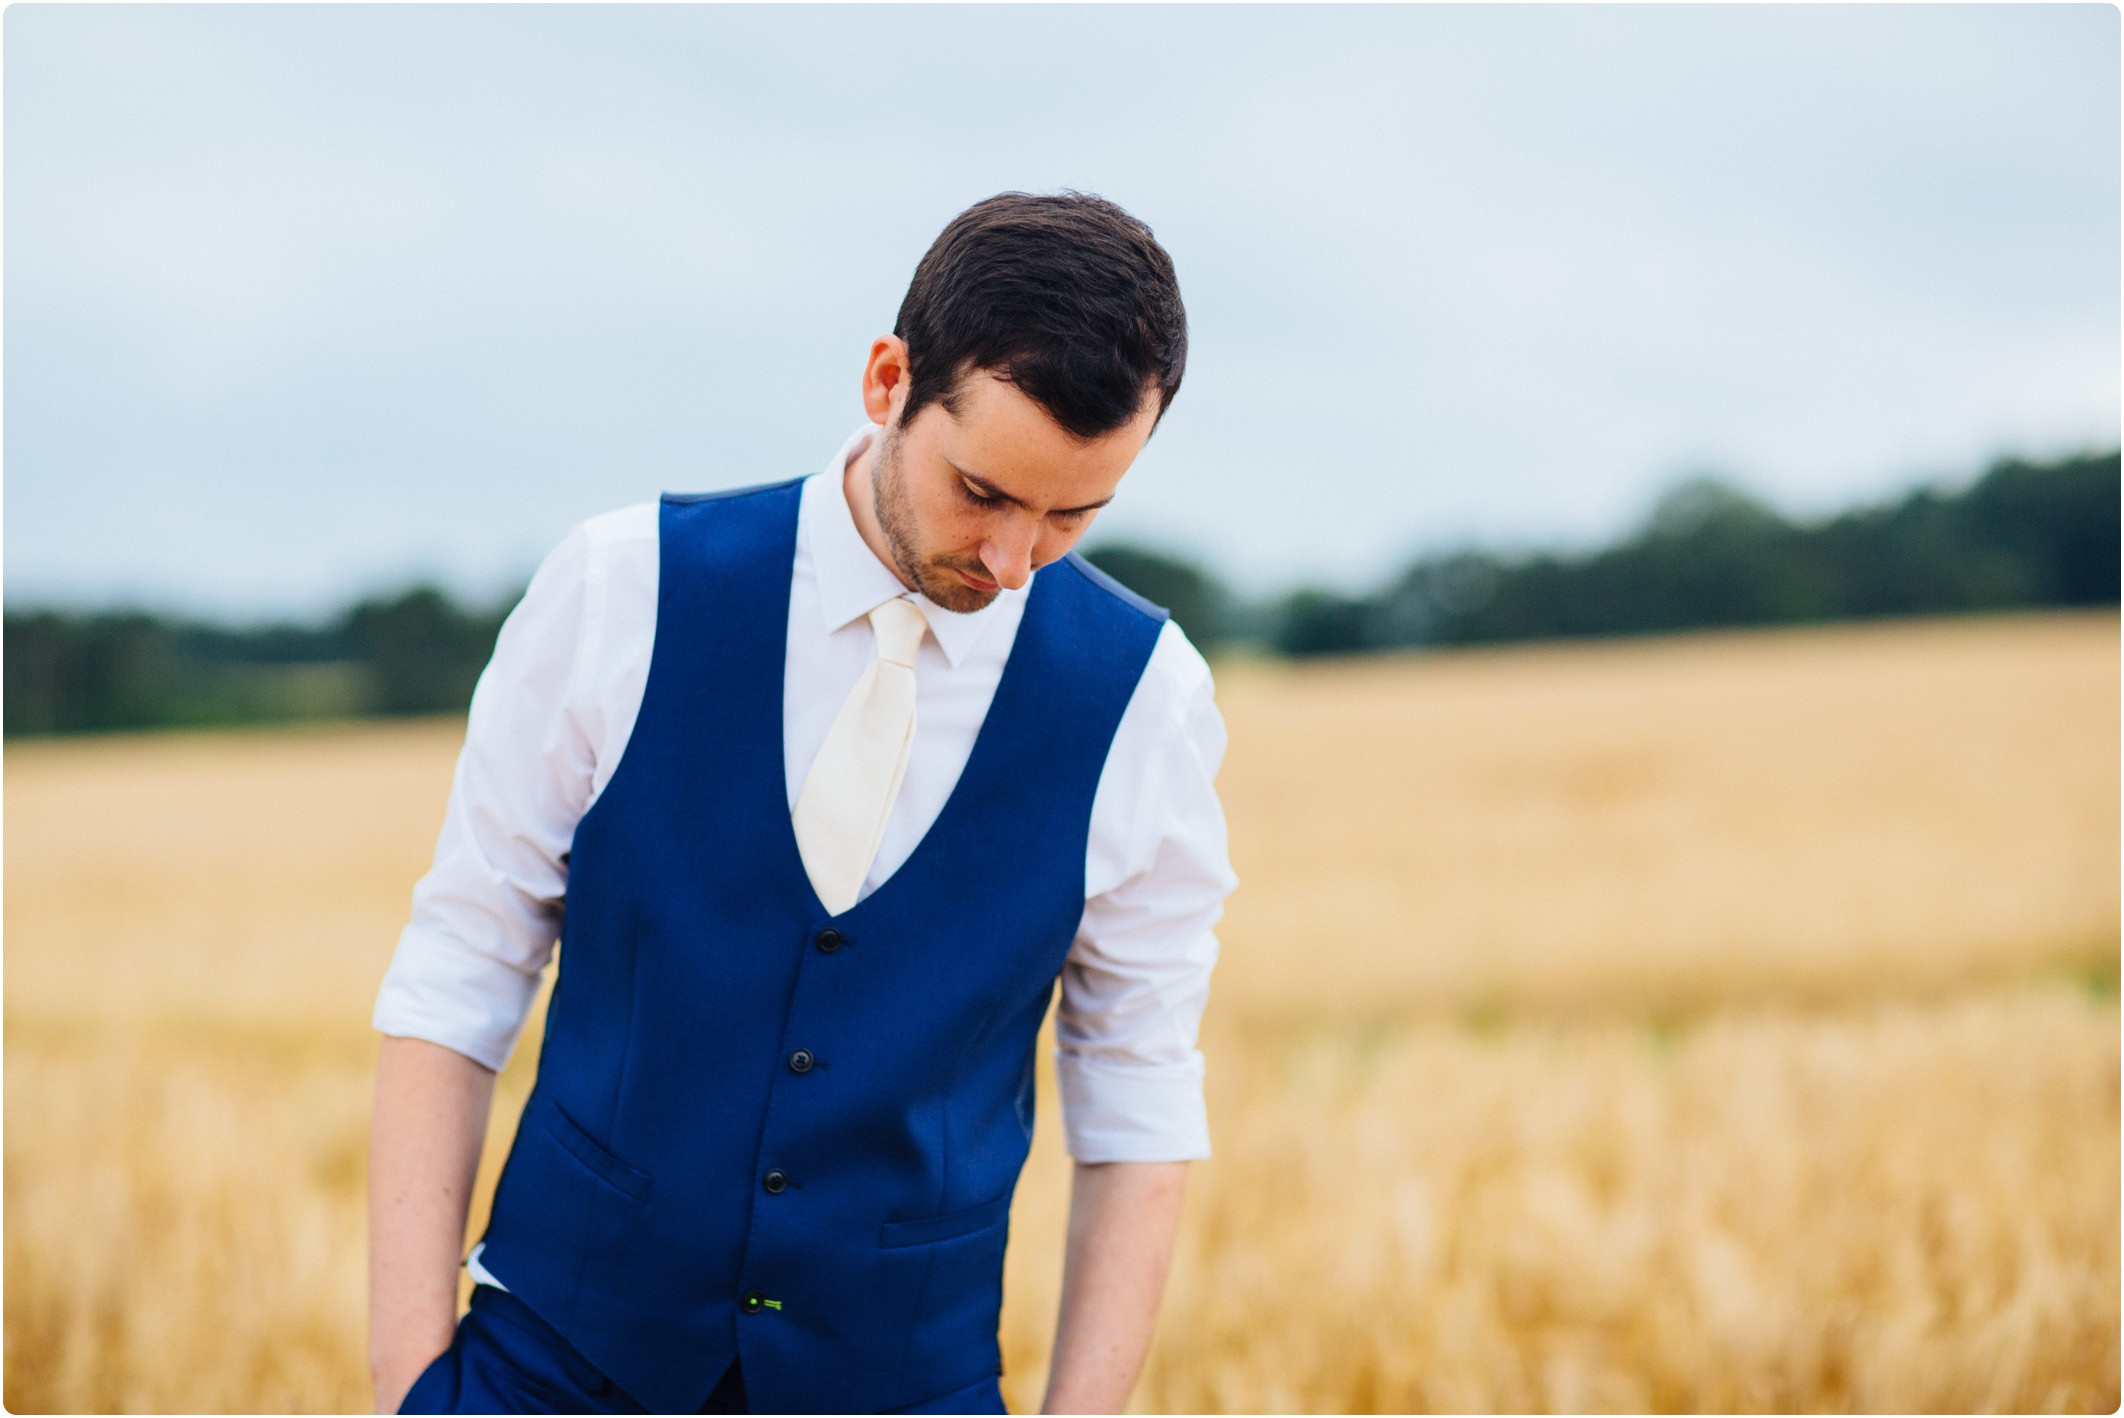 Groom with waistcoat and rolled up sleeves